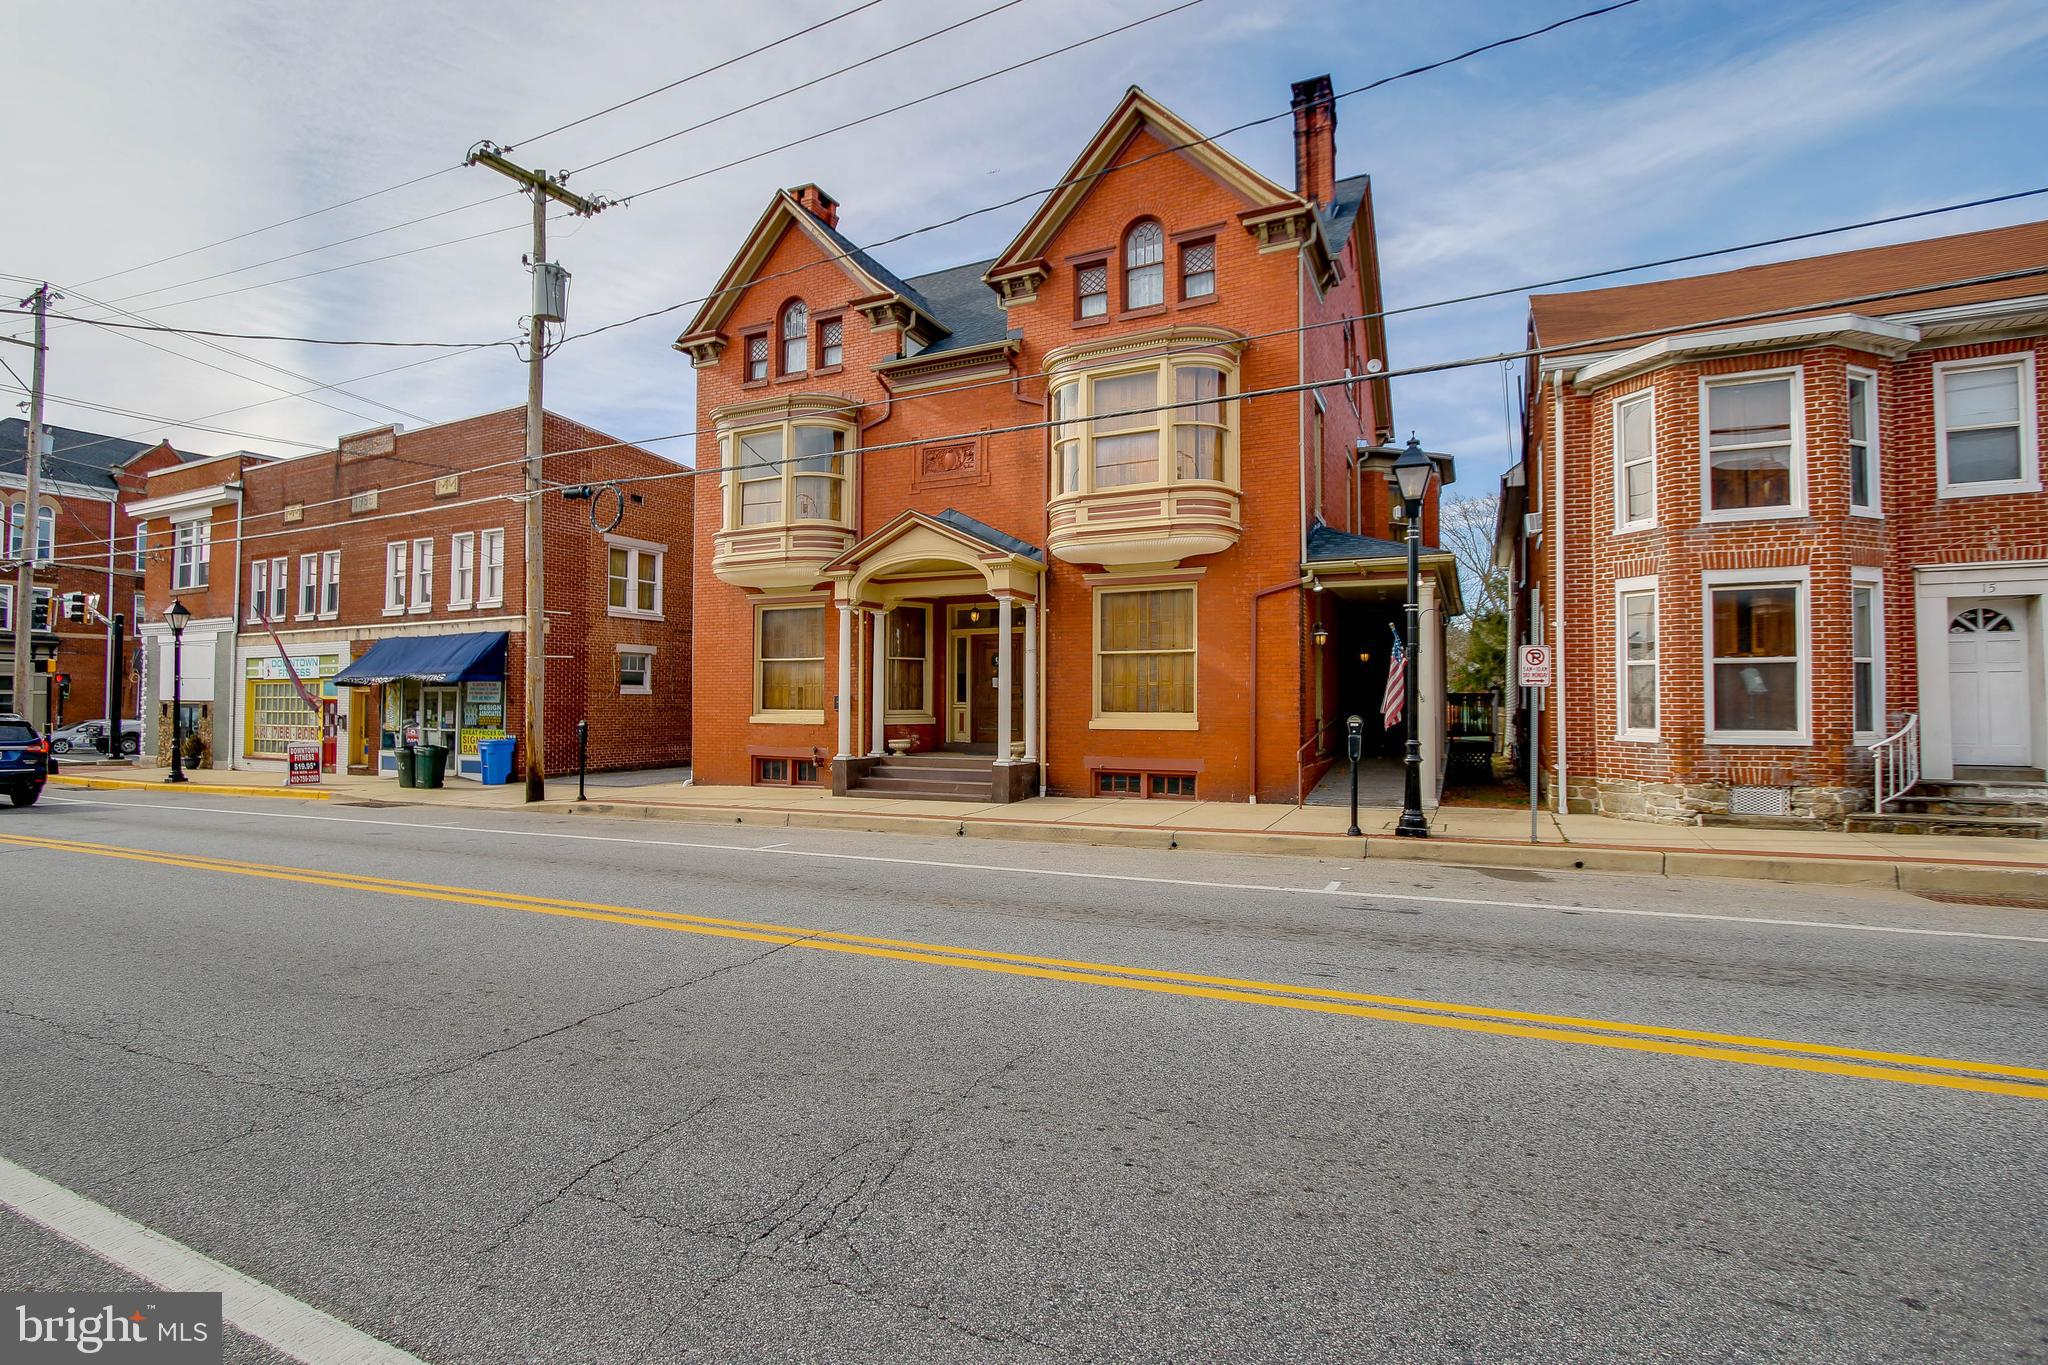 A Grand Old Colonial Revival Victorian beauty built in 1895 has a total of 7 bedrooms and 3 full bat